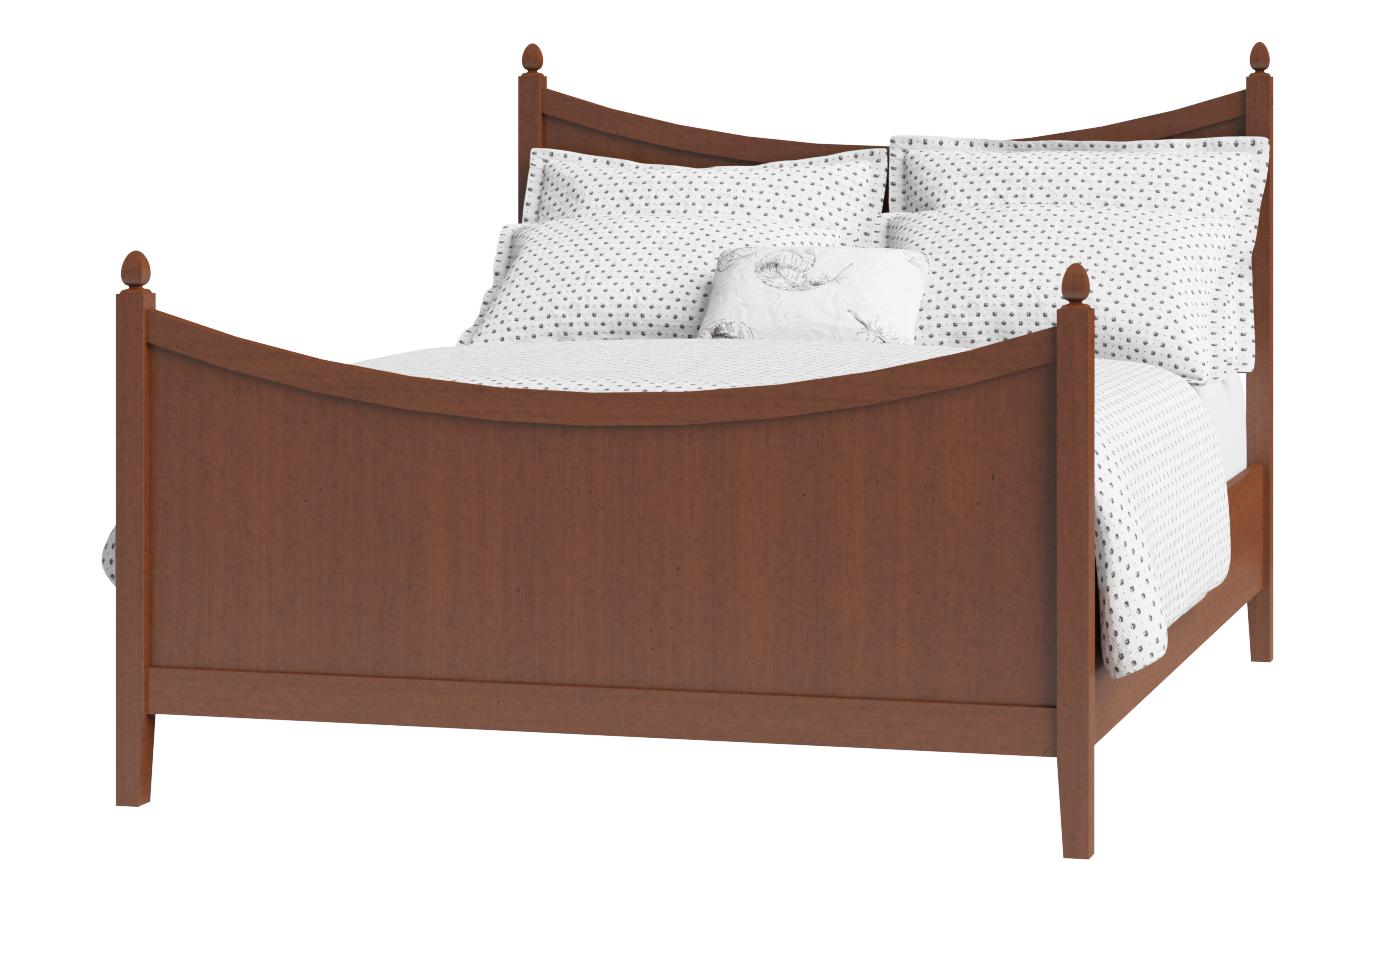 Cutout of Blake wood bed in a dark cherry finish